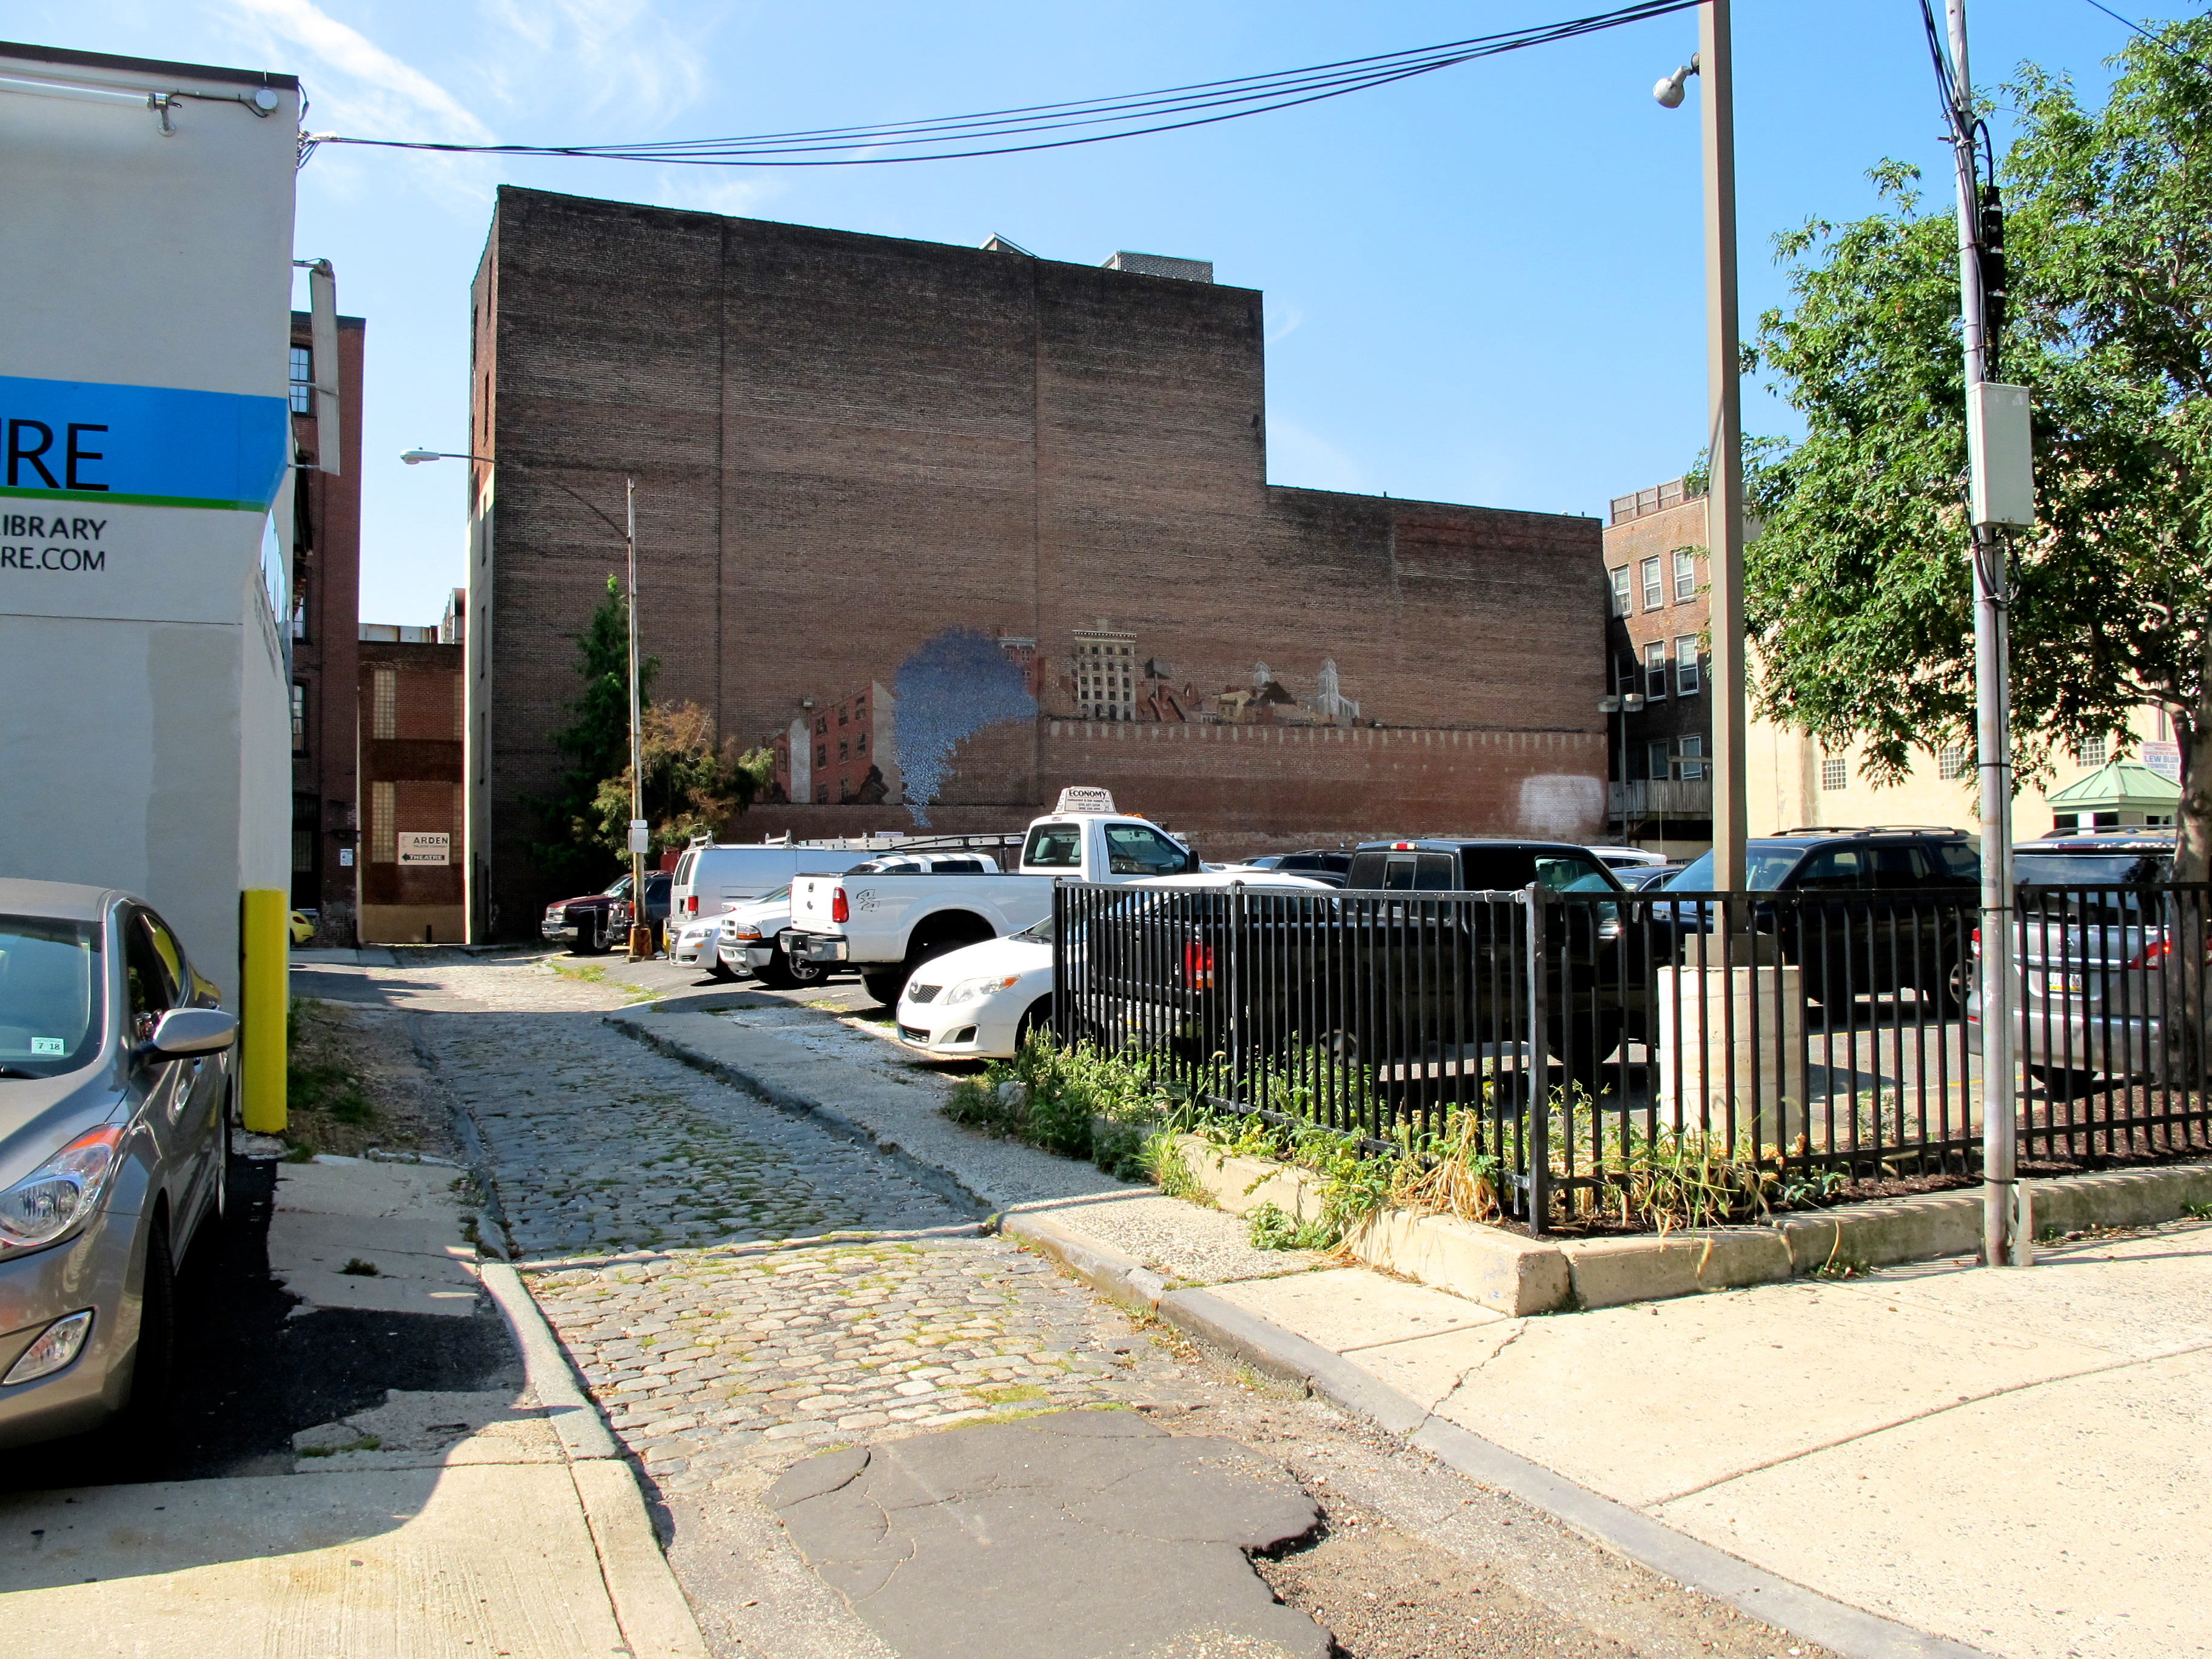 Little Boy's Way and parking lot on Arch Street | Ashley Hahn/PlanPhilly